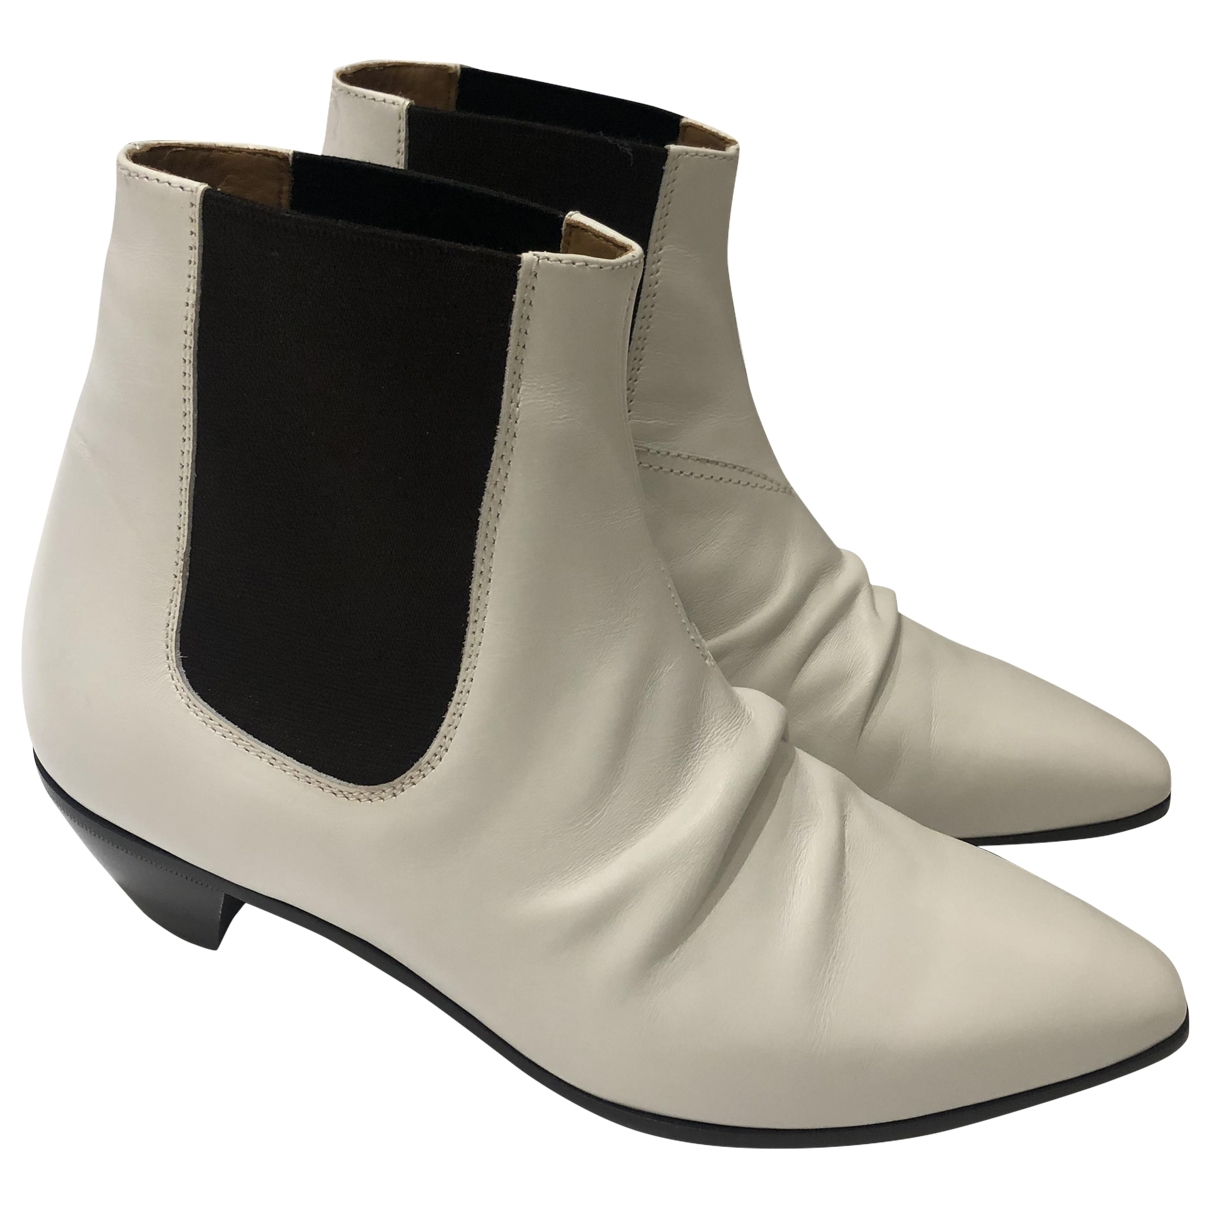 Celine \N White Leather Ankle boots for Women 38.5 EU